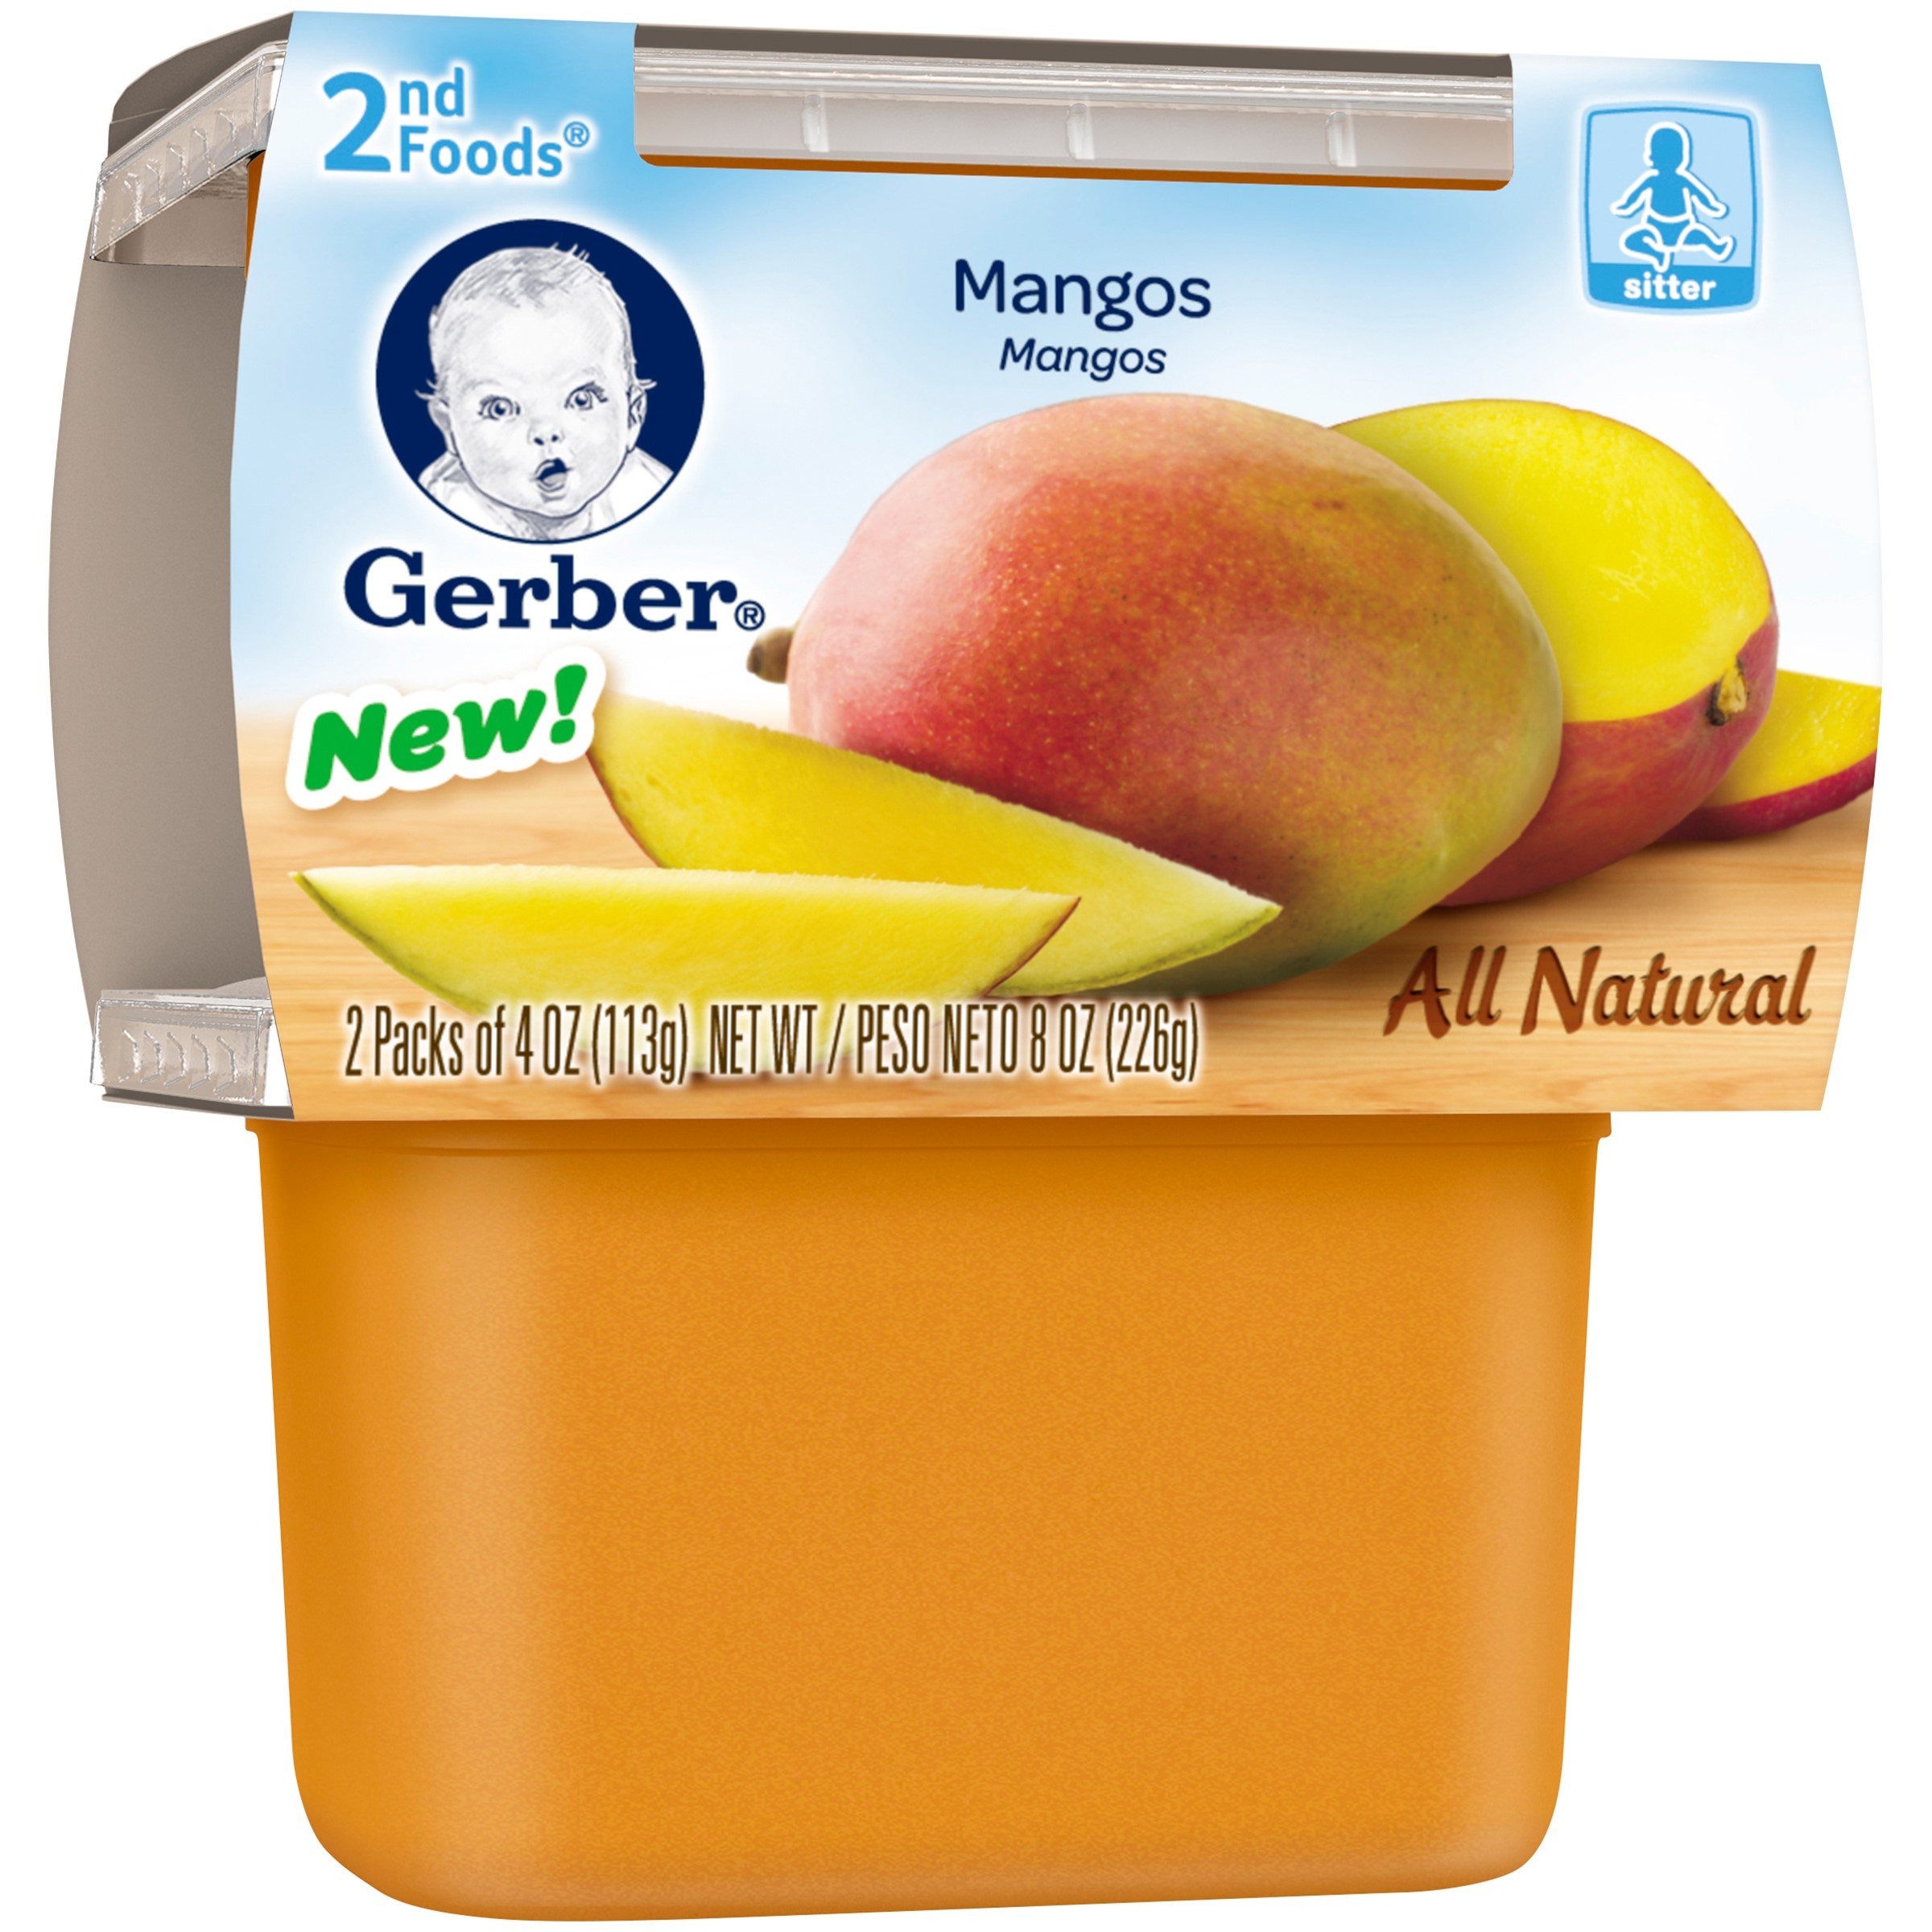 Gerber 2nd Foods Mangos Baby Food, 4 oz Tubs, 2 Count (Pack of 8)